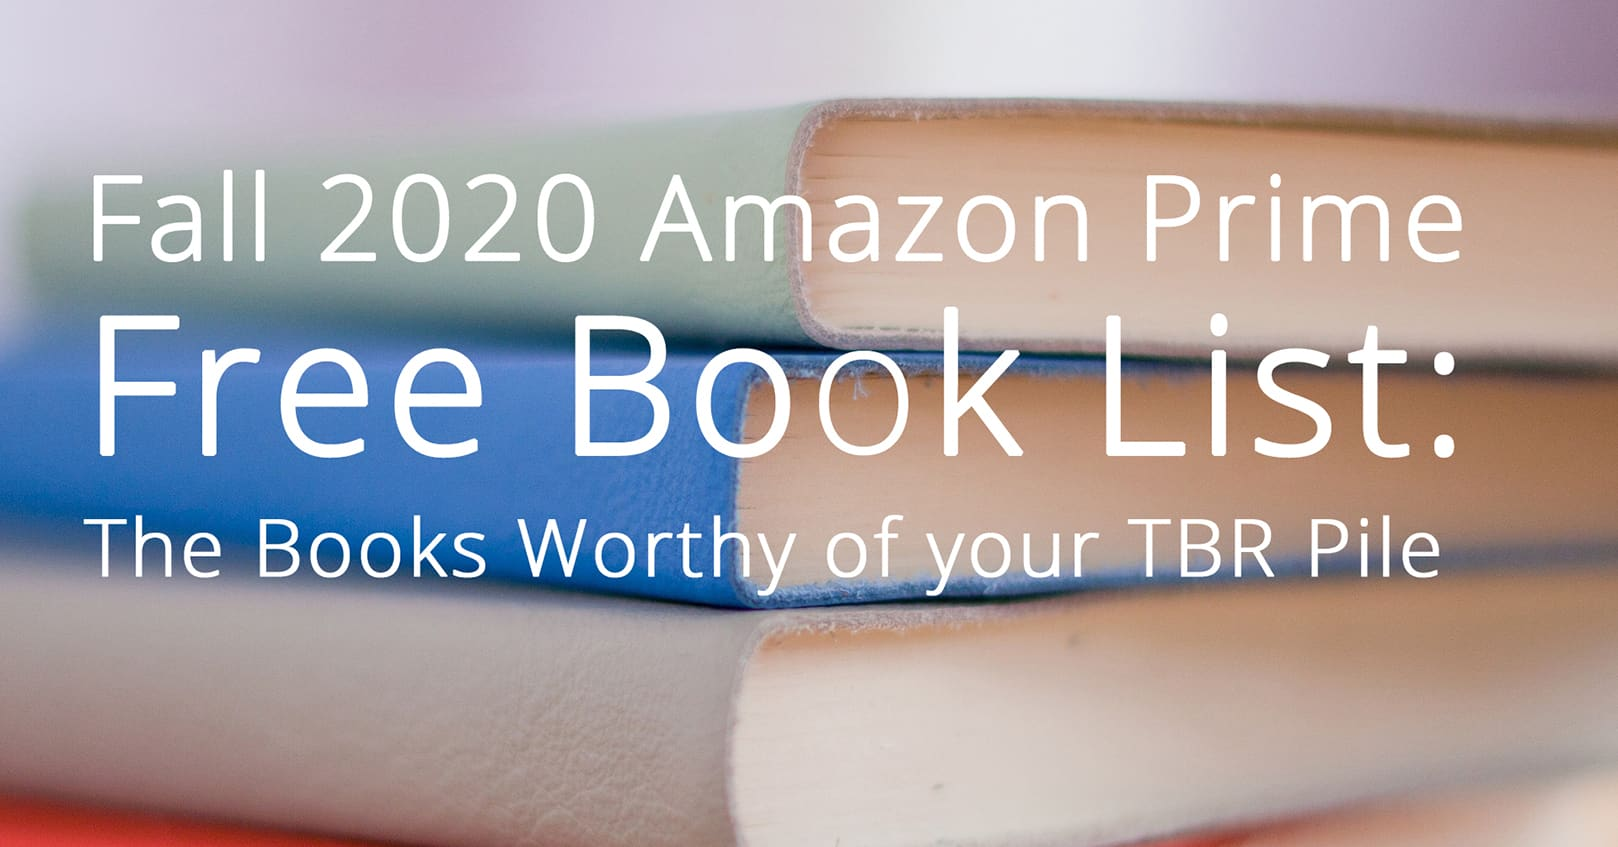 Amazon prime free book list